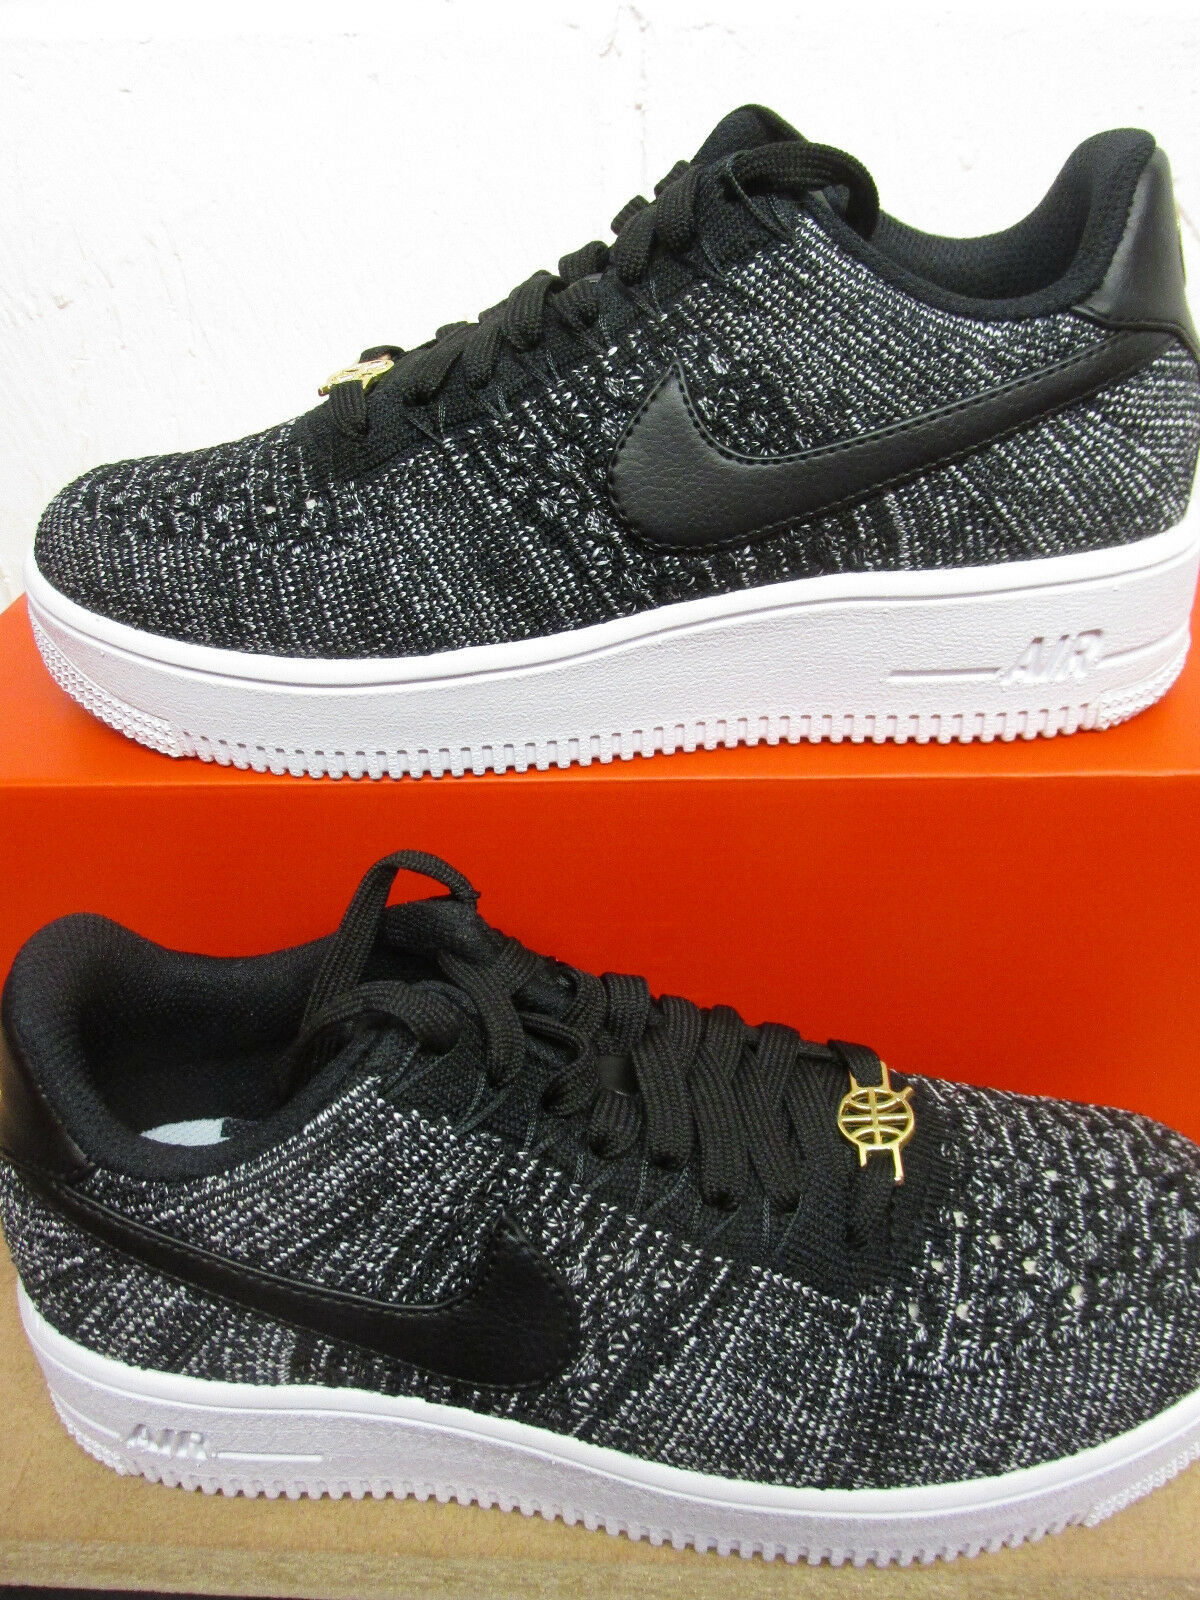 Nike AF1 Air Force 1 Ultra Flyknit Zapatillas Running Hombre 853880 001